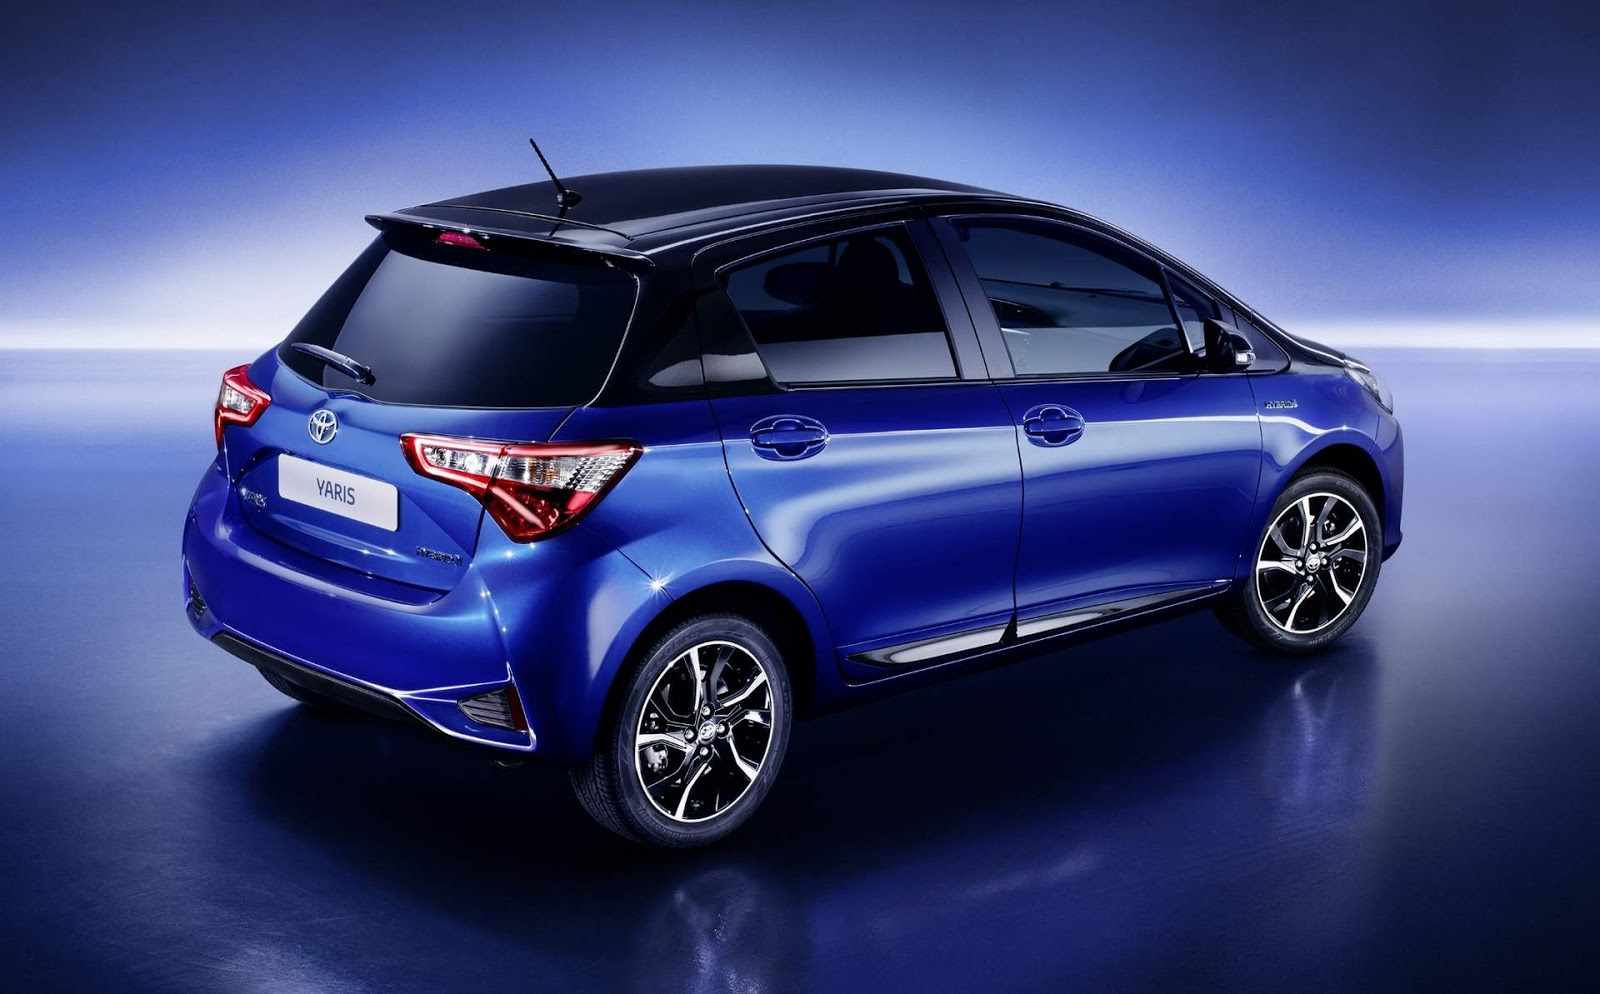 toyota yaris 2017 recebe facelift e novo motor fotos car blog br. Black Bedroom Furniture Sets. Home Design Ideas